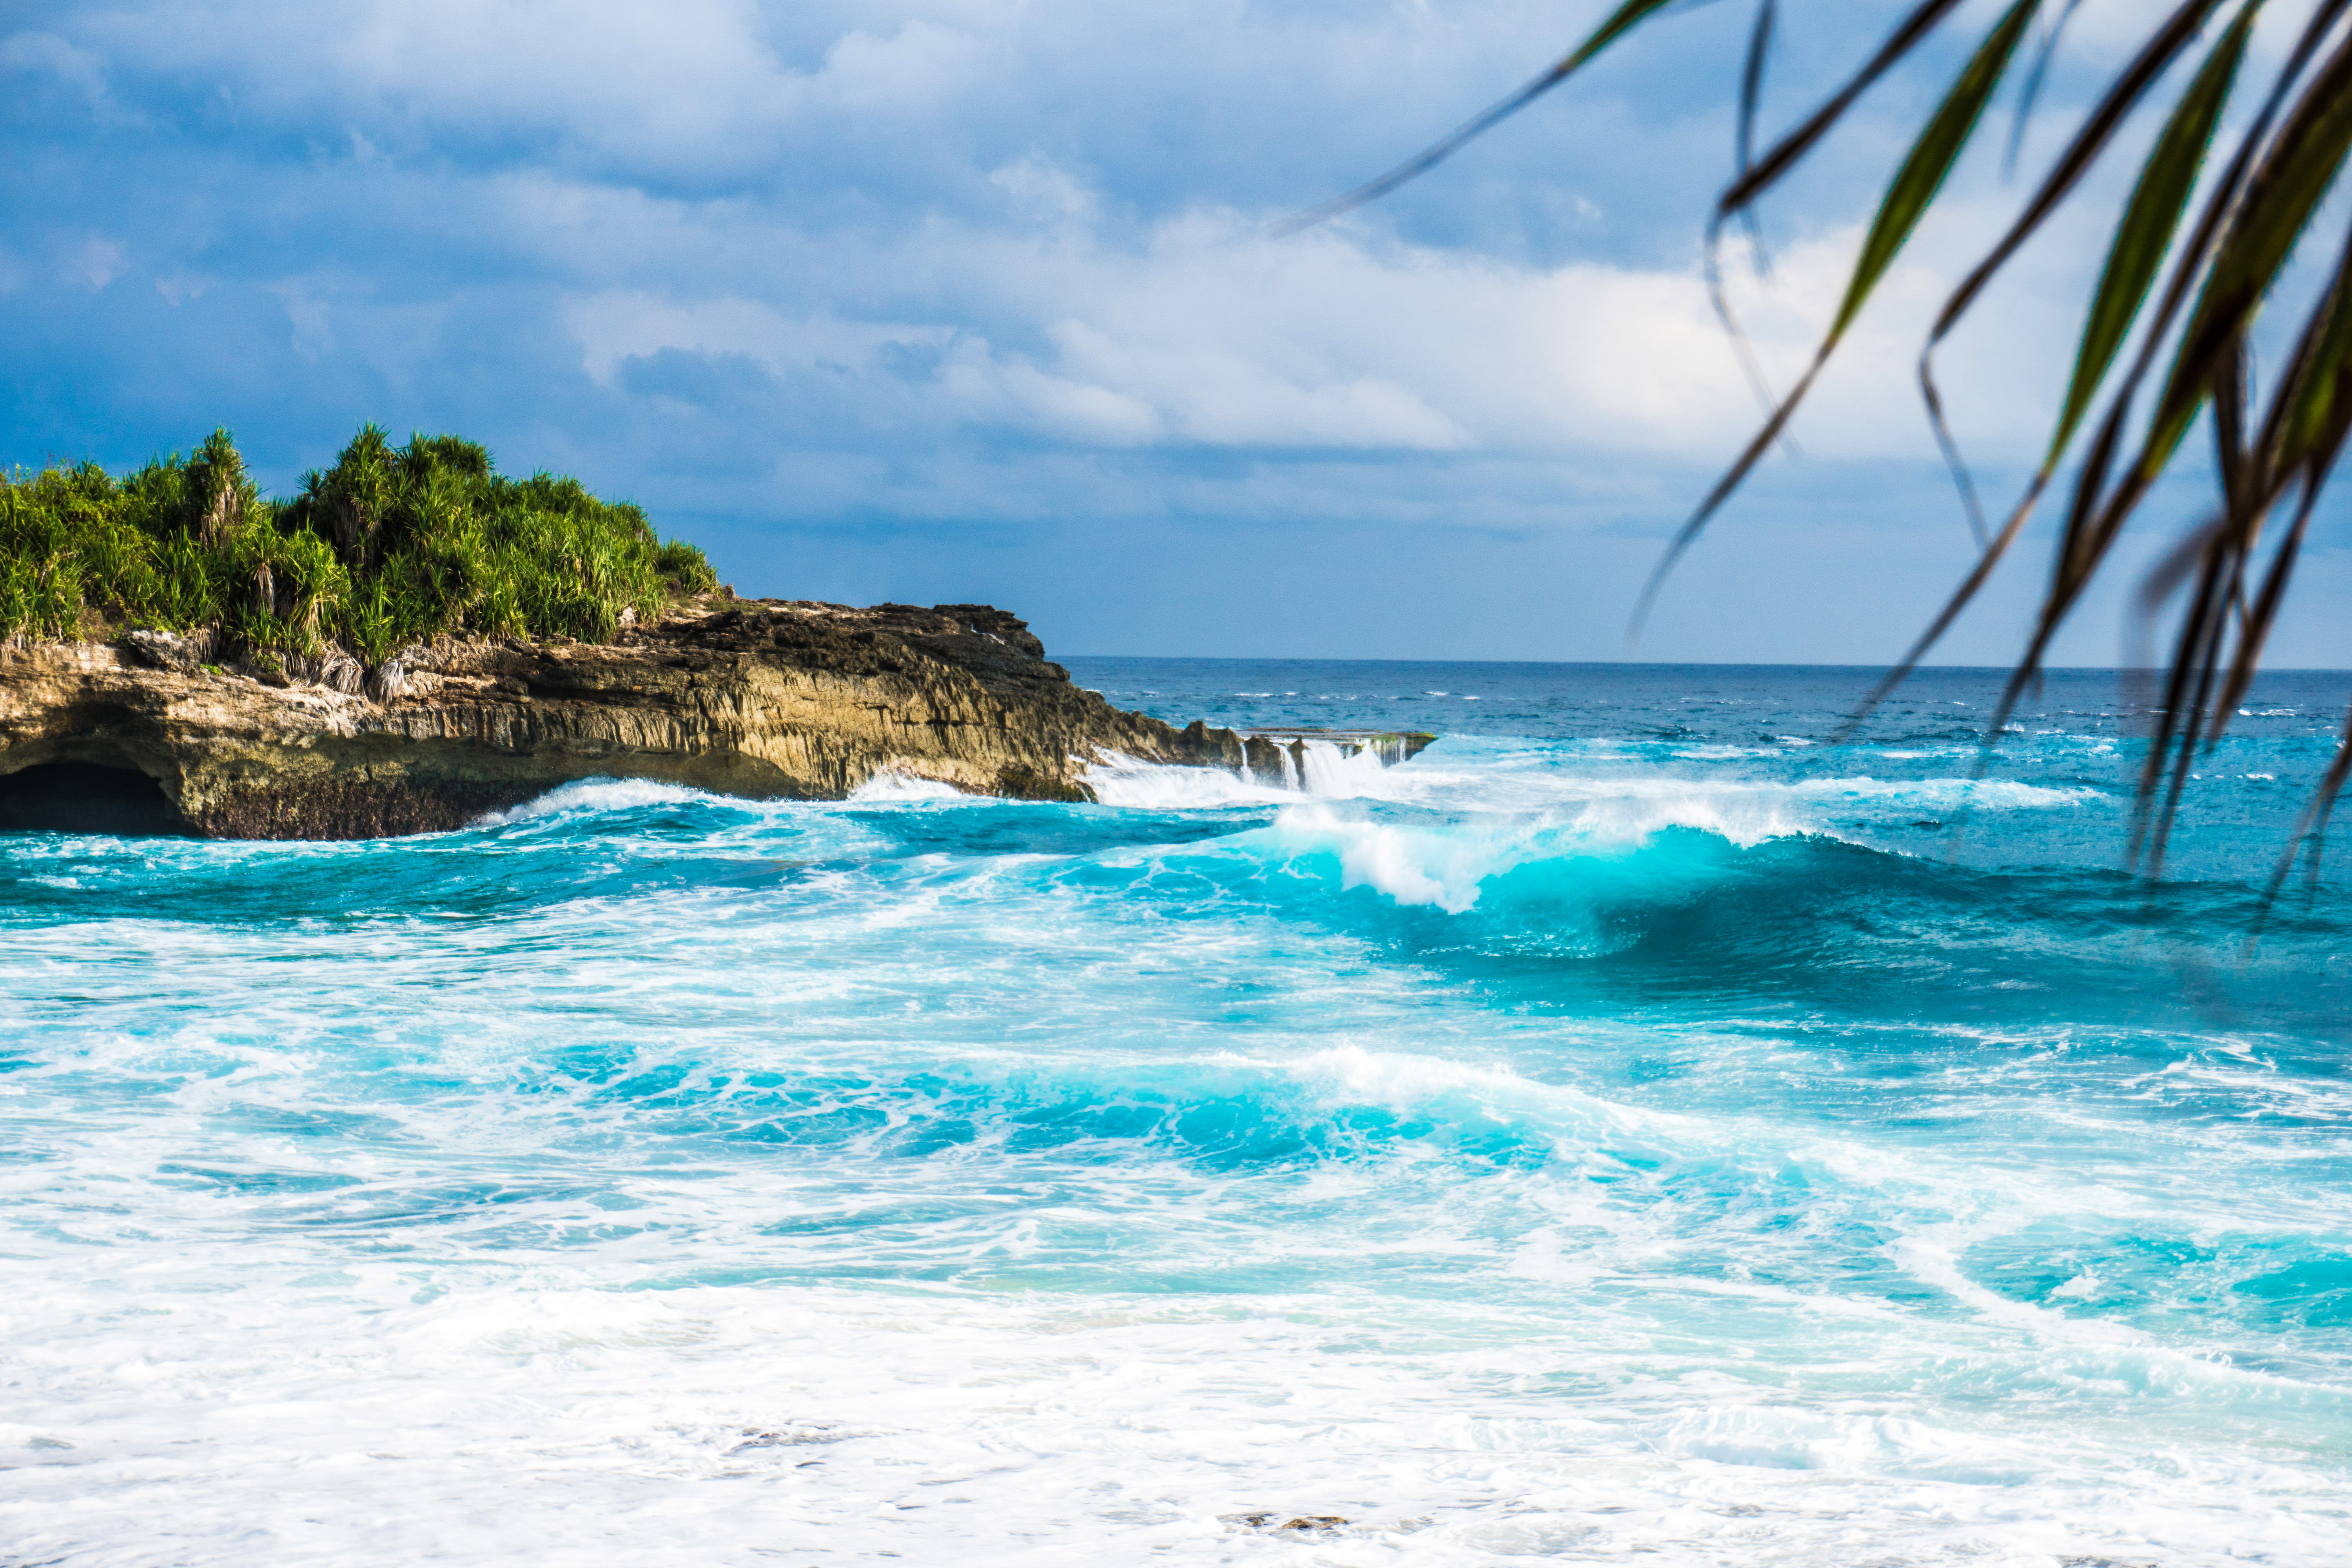 free stock photo of waves on the ocean crashing on shore in indonesia